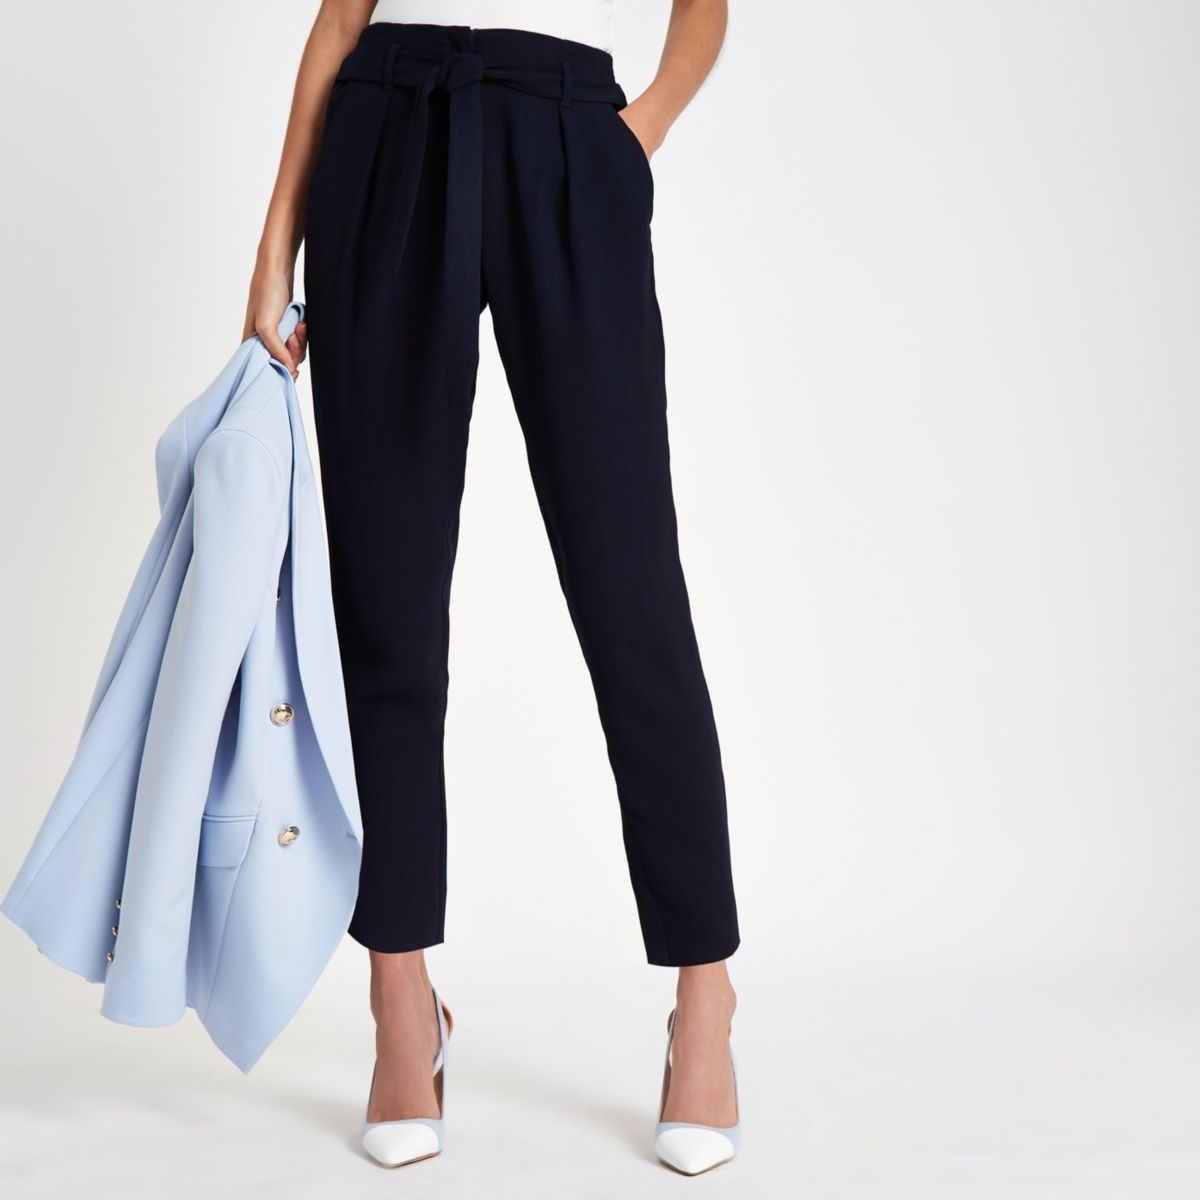 Navy tie waist tapered pants